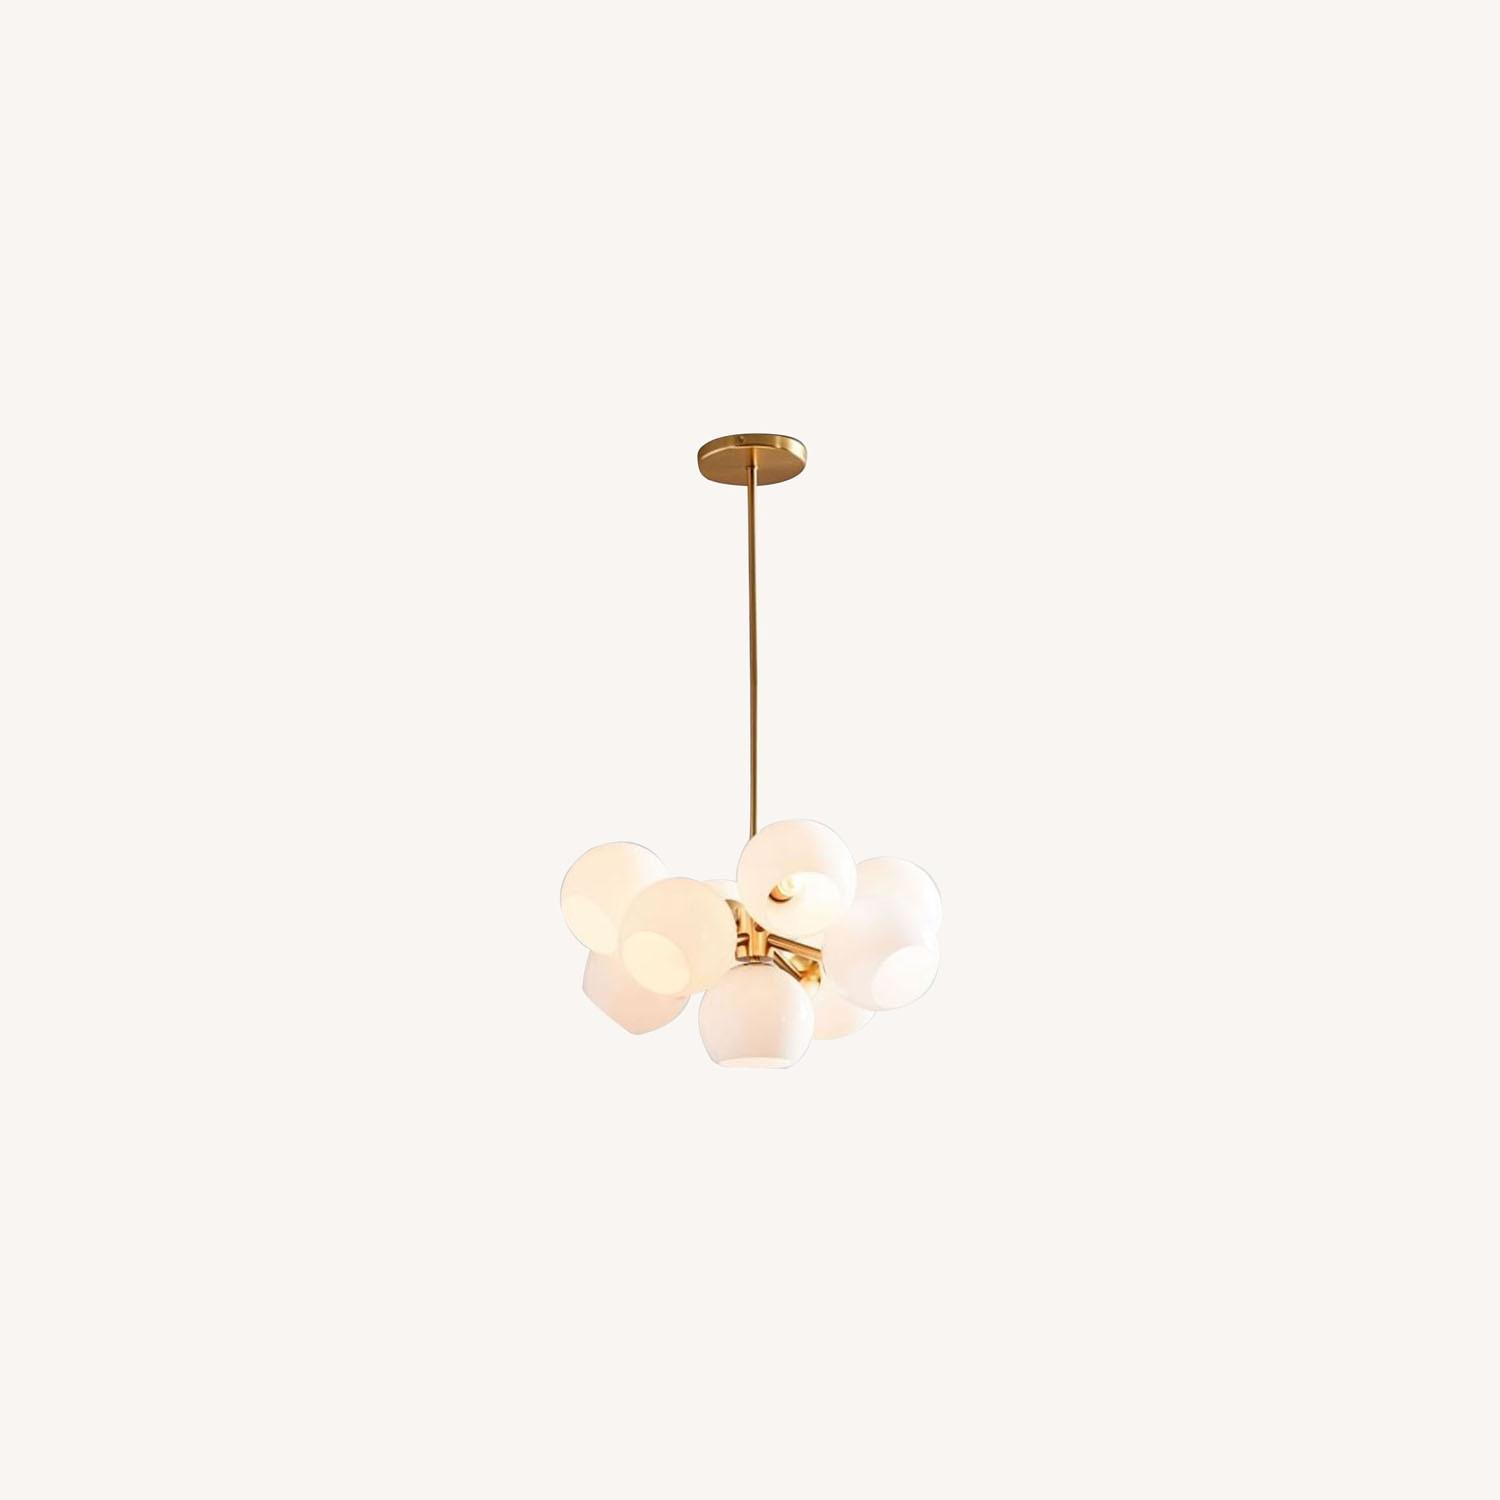 West Elm Staggered Glass Chandelier, Brass - image-0